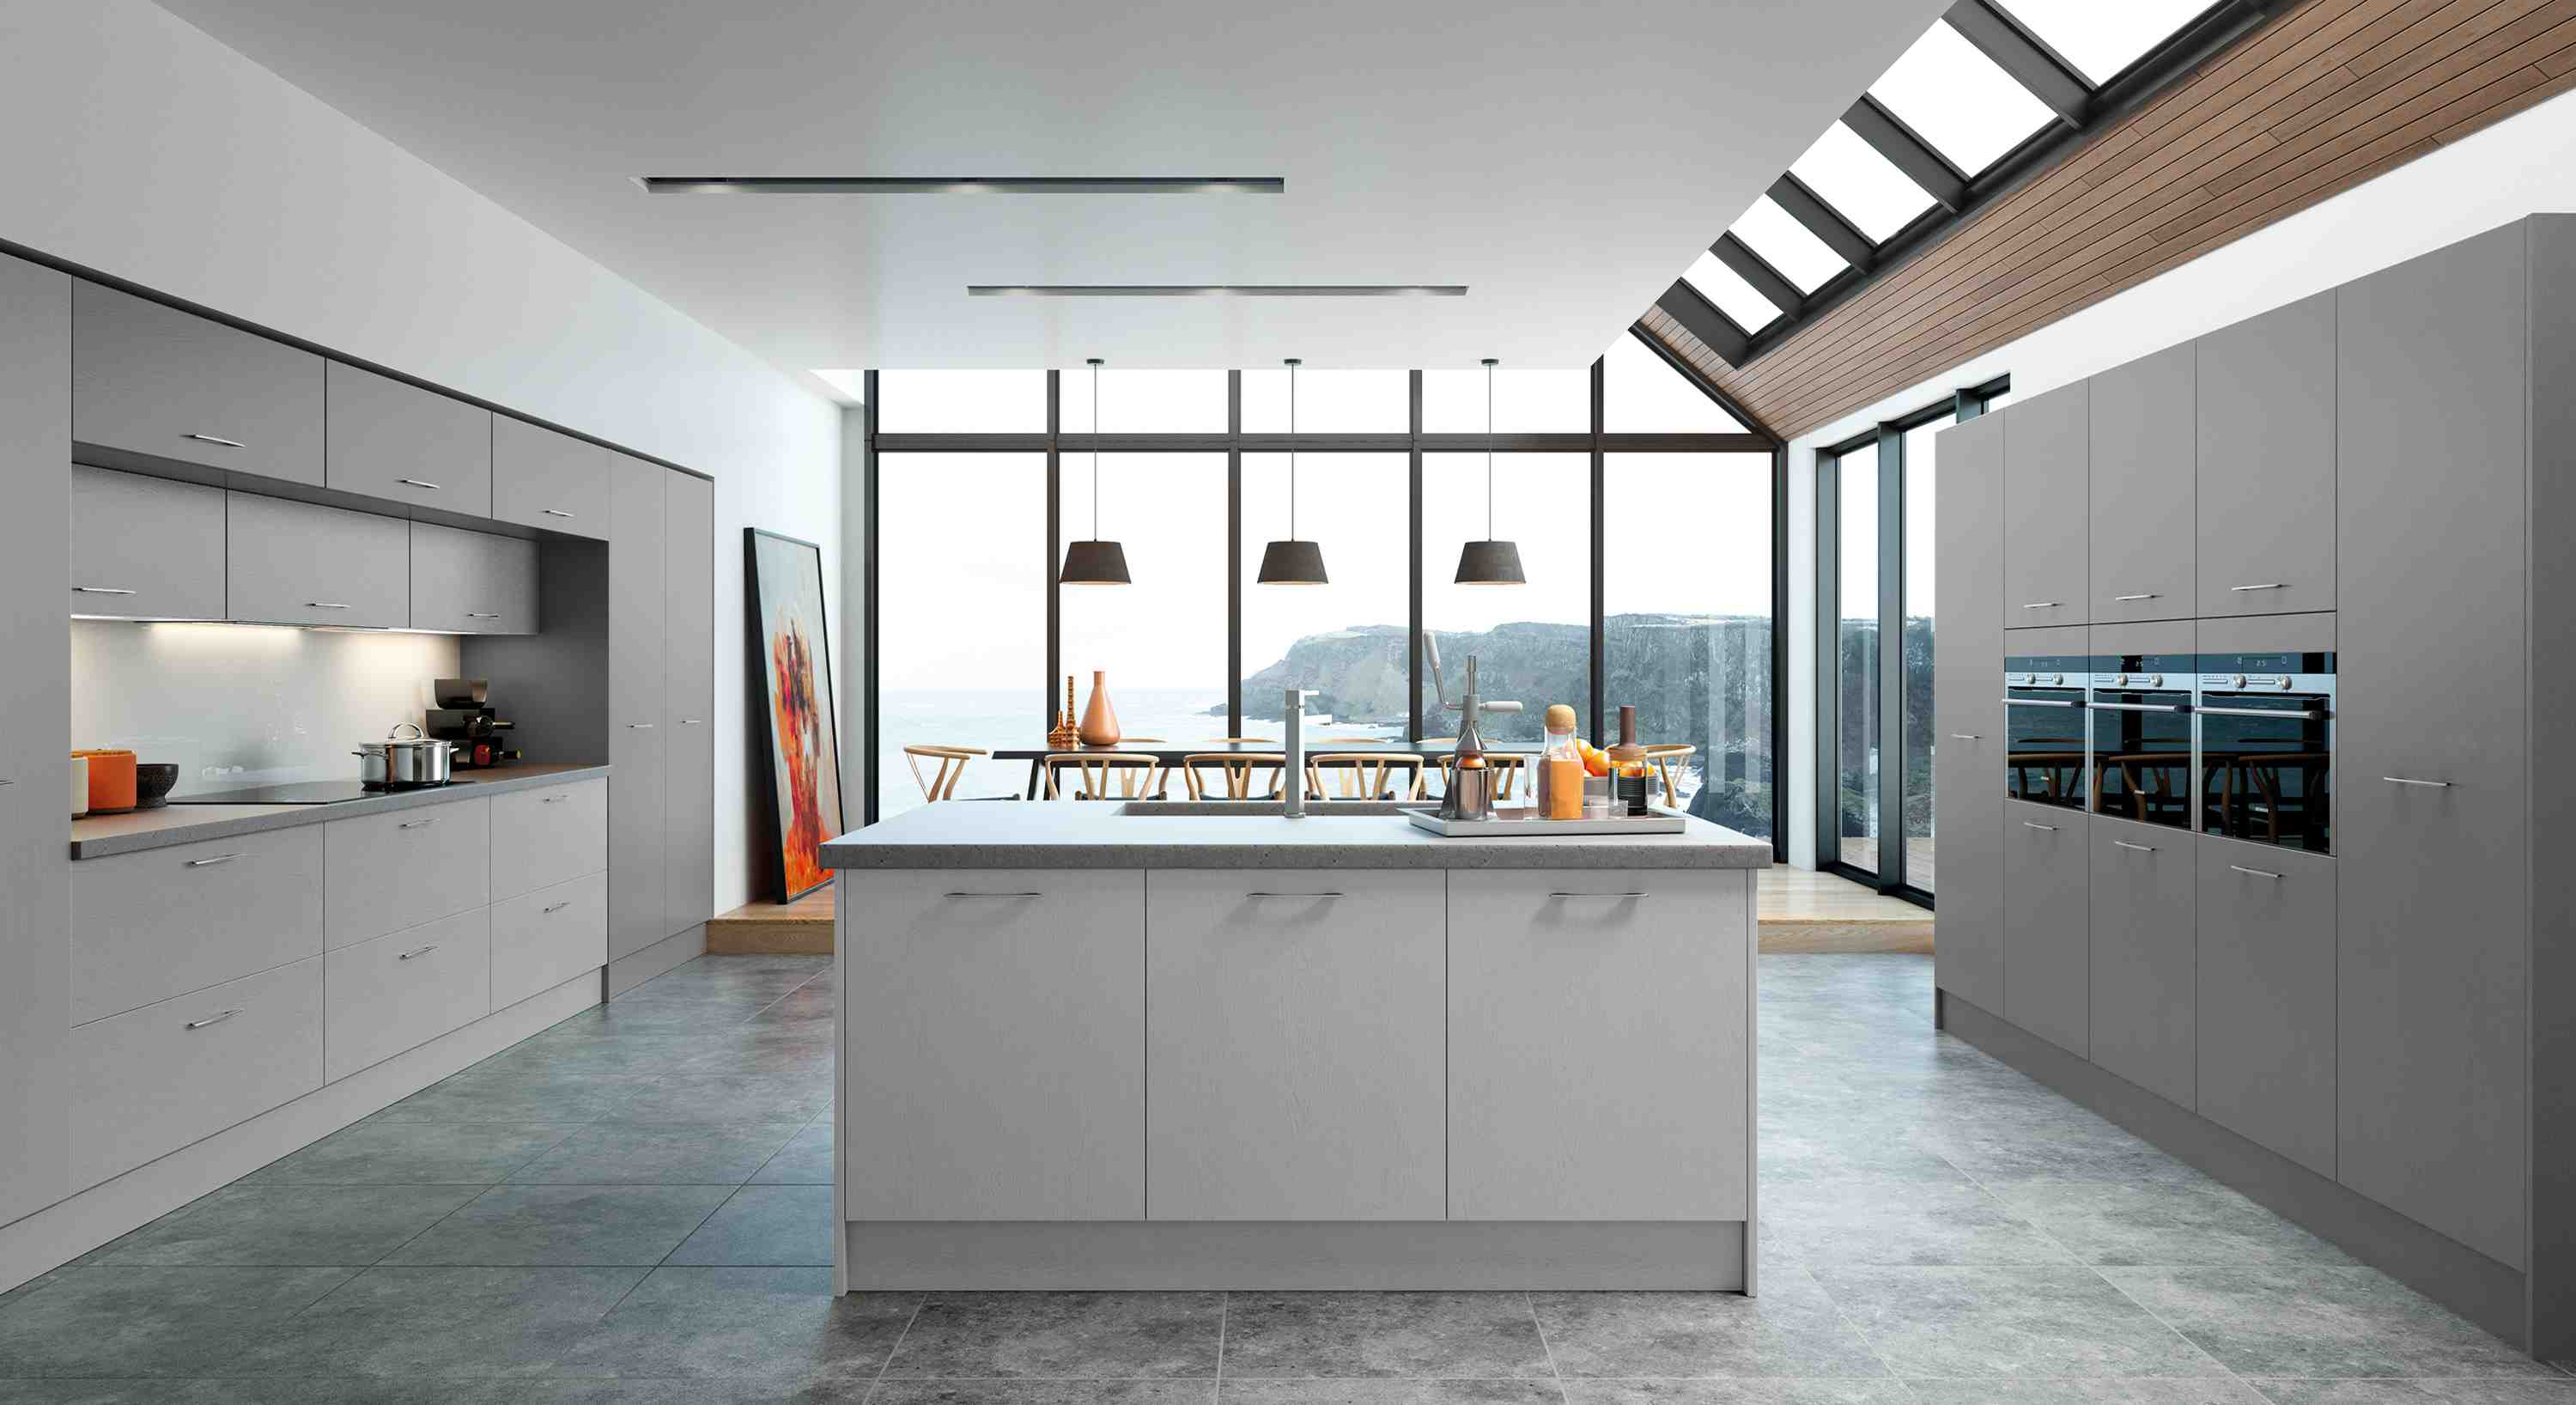 mather is a vinyl cut and edged door that offers something different from standard slab kitchens, with it's real wood effect grained legno vinyl, creating a natural warmth.